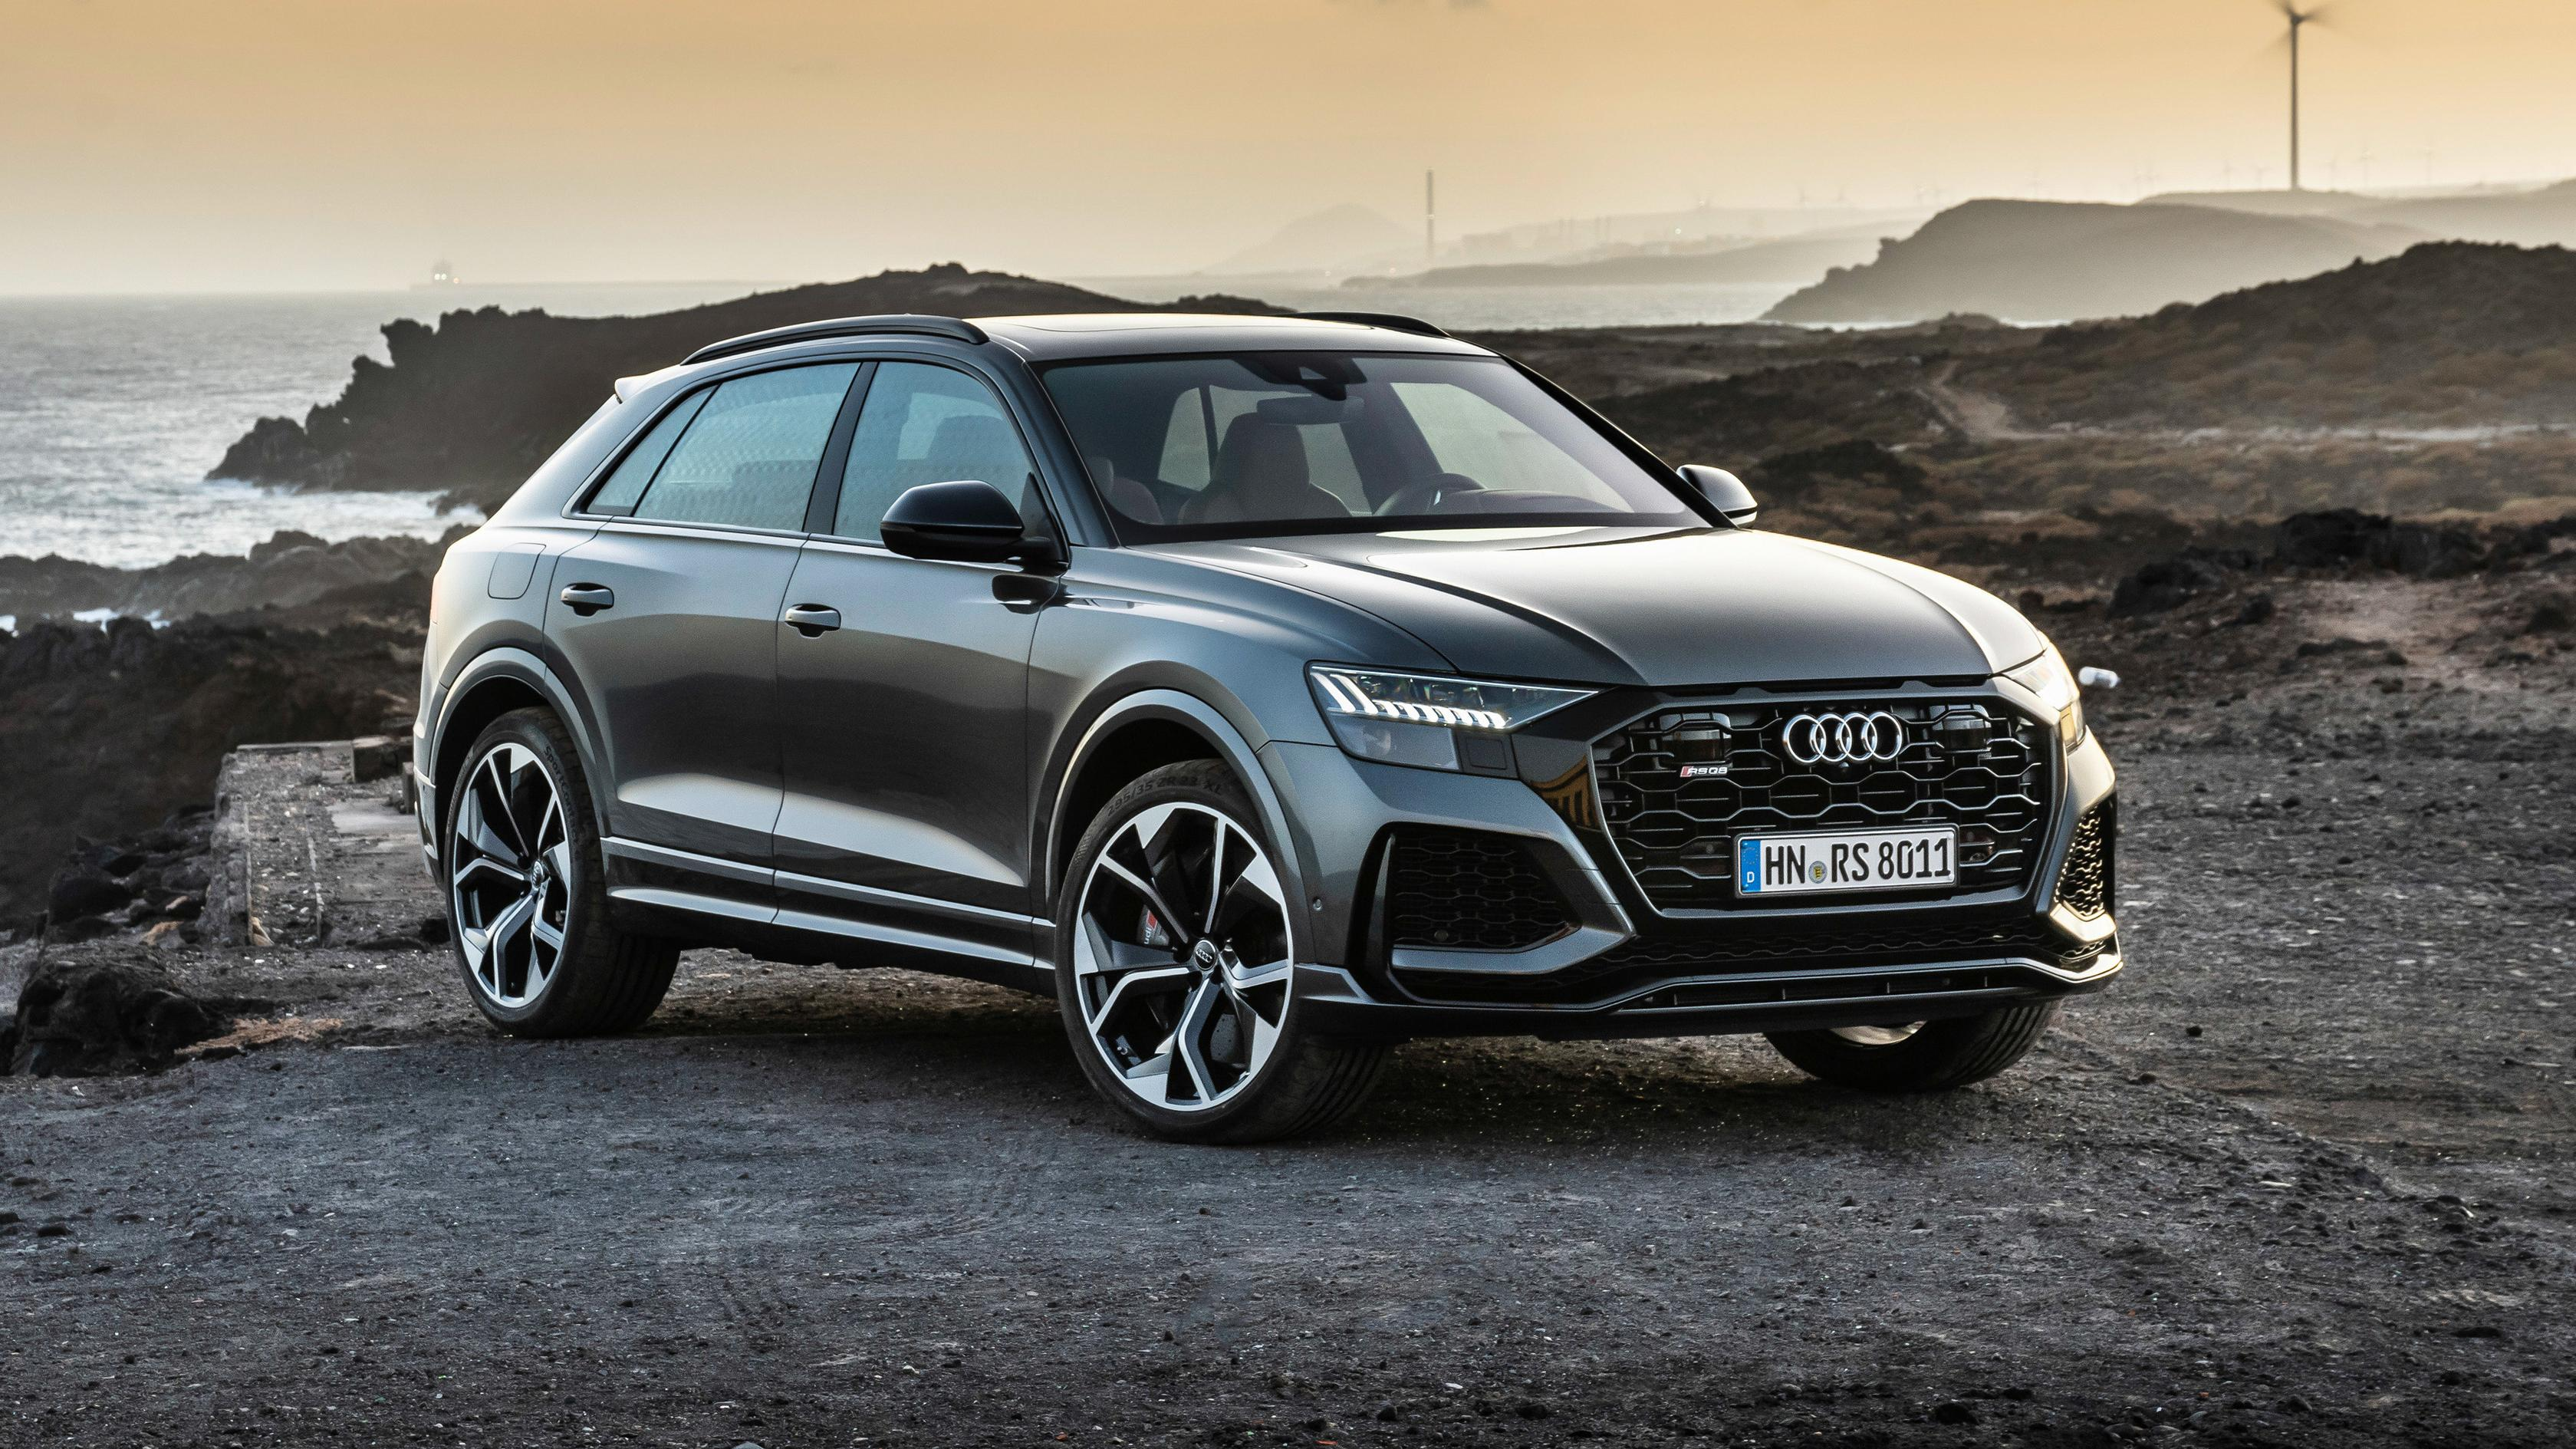 2020 Audi Rsq8 Pricing And Specs Carexpert